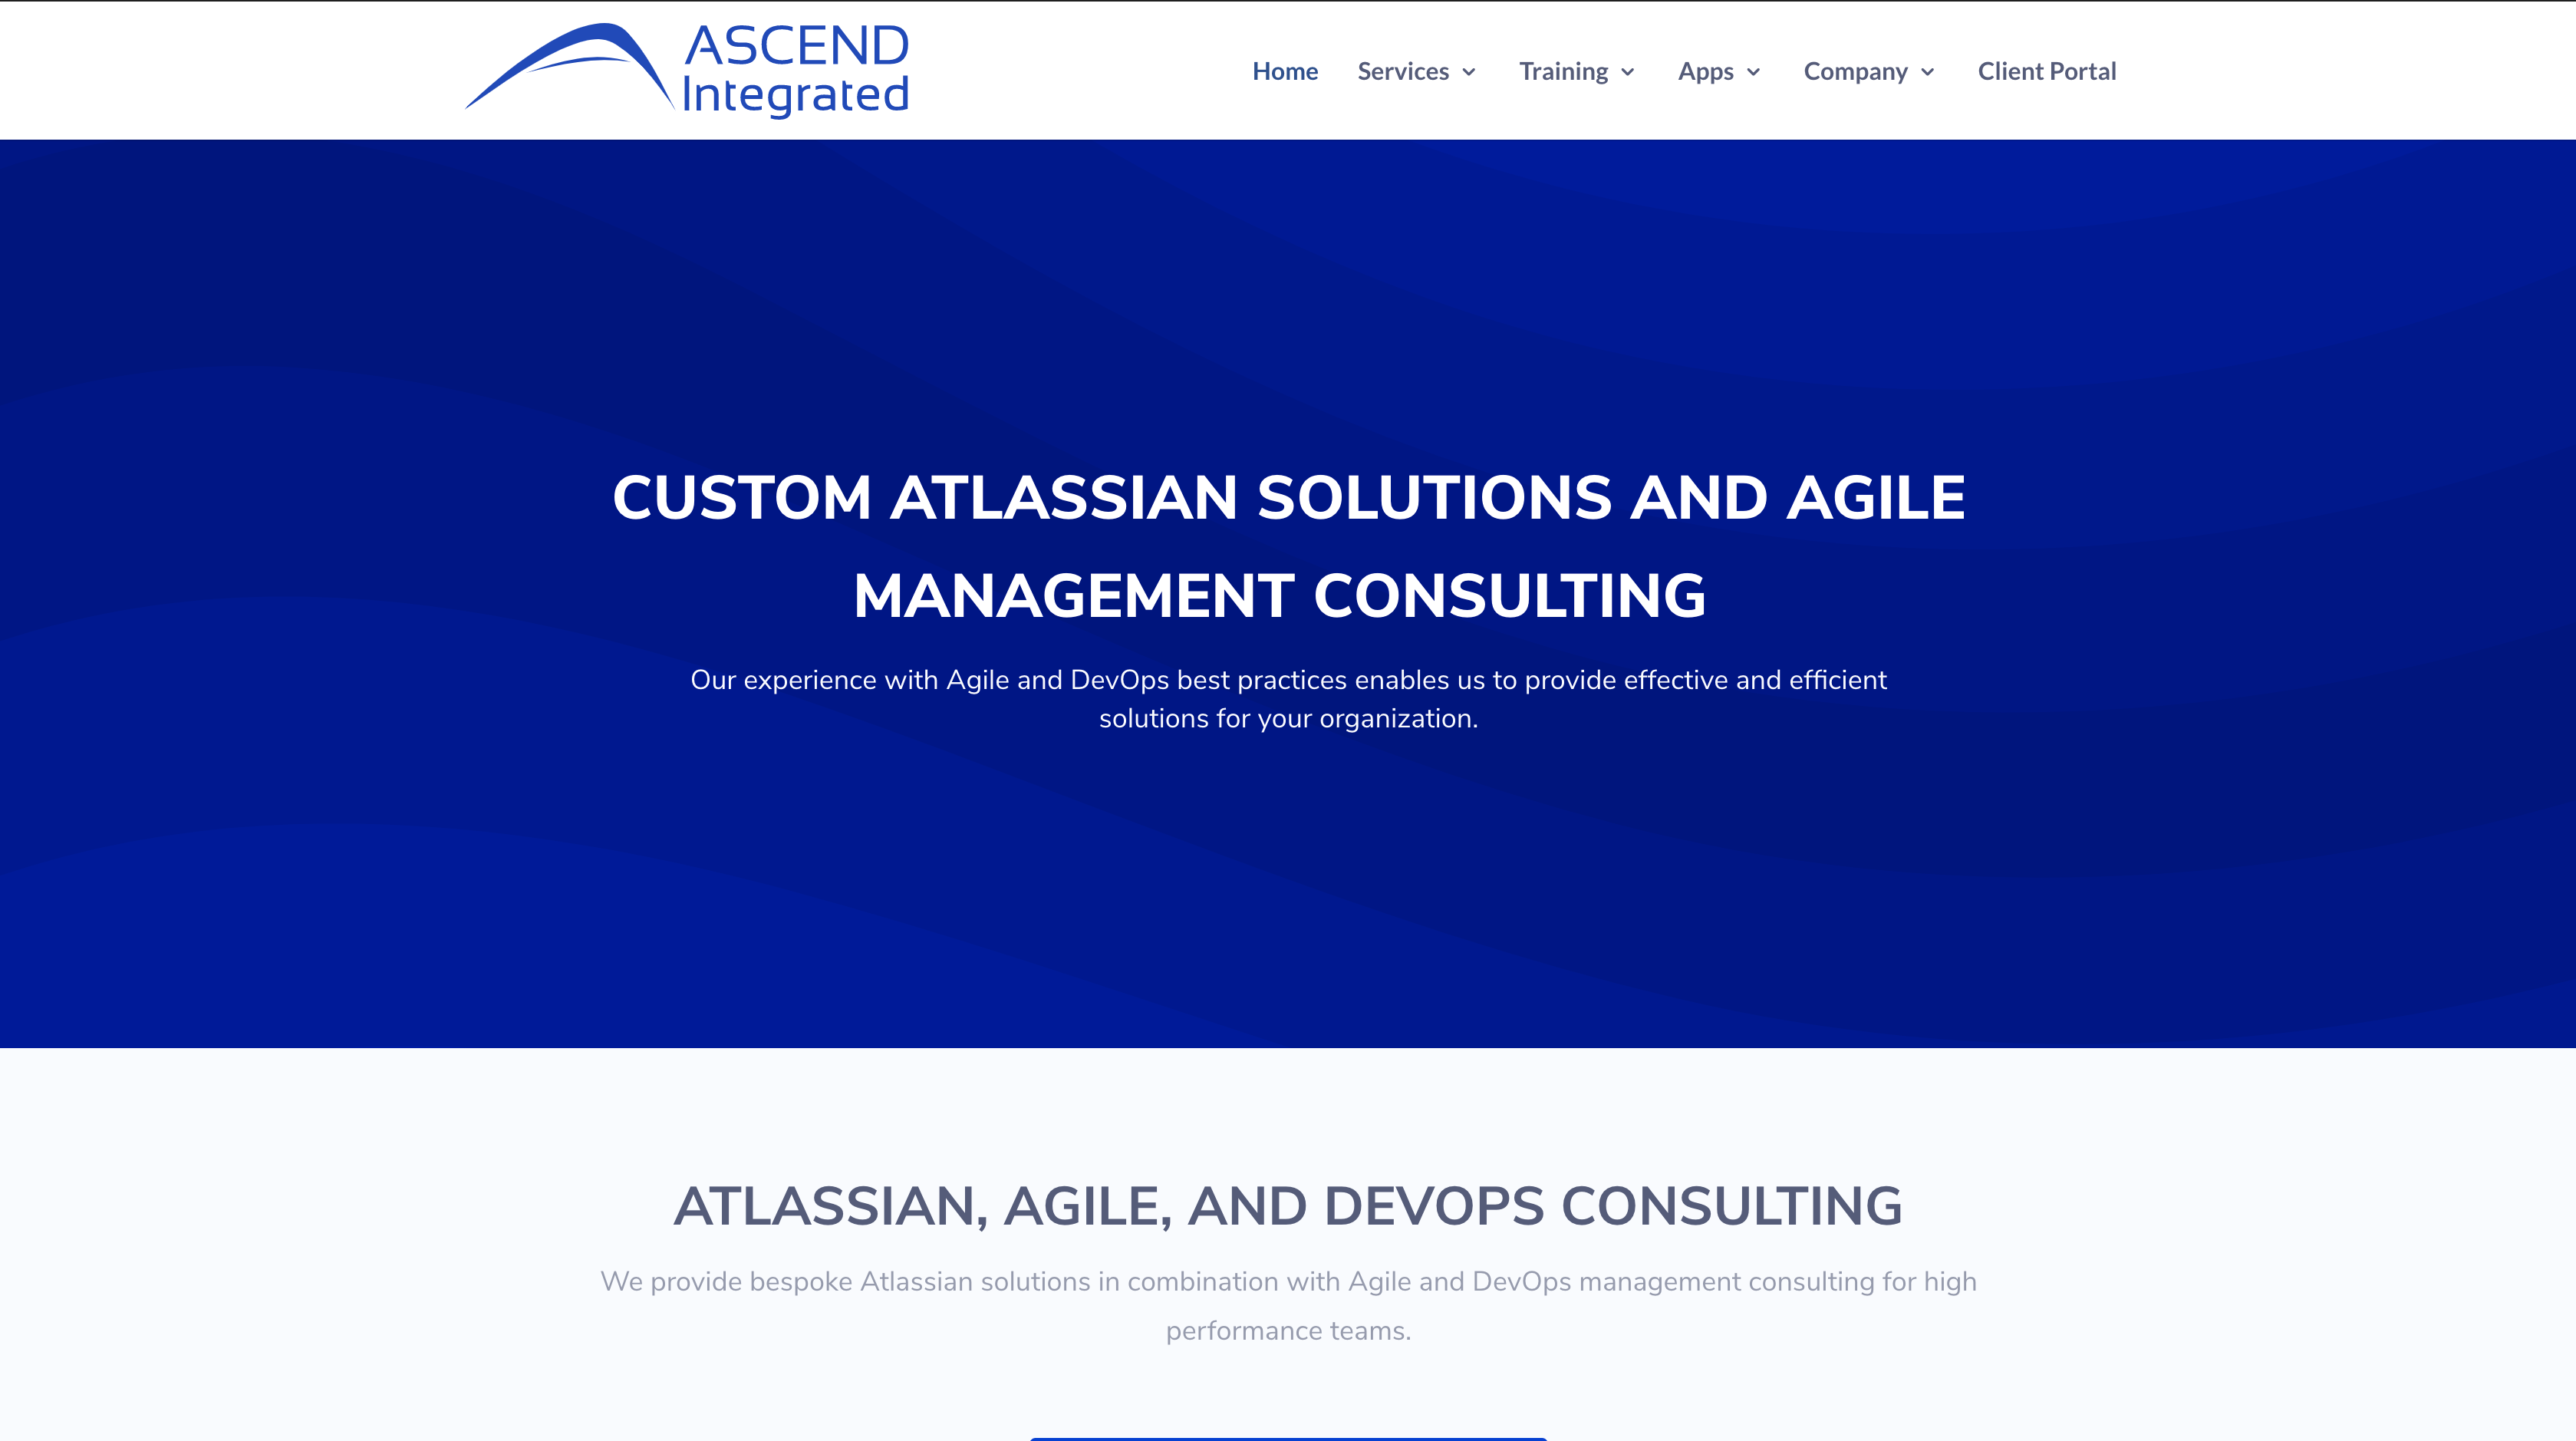 Ascend Integrated Home Page